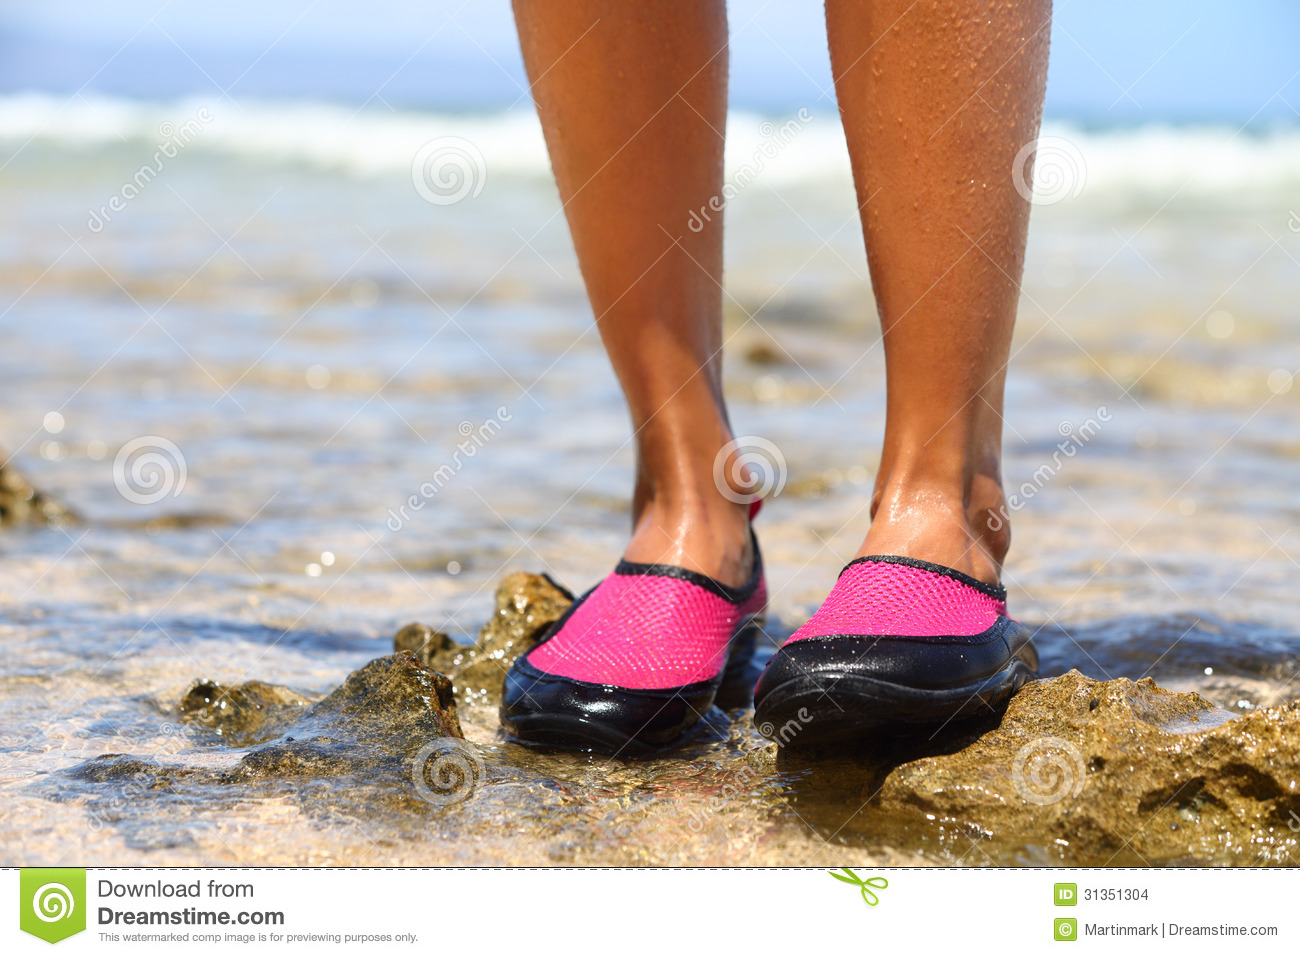 Water shoes   swimming shoe in Pink neoprene on rocks in water on beach.  Closeup detail of the feet of a woman wearing bright pink neoprene water  shoes ... e0a4602cc54a